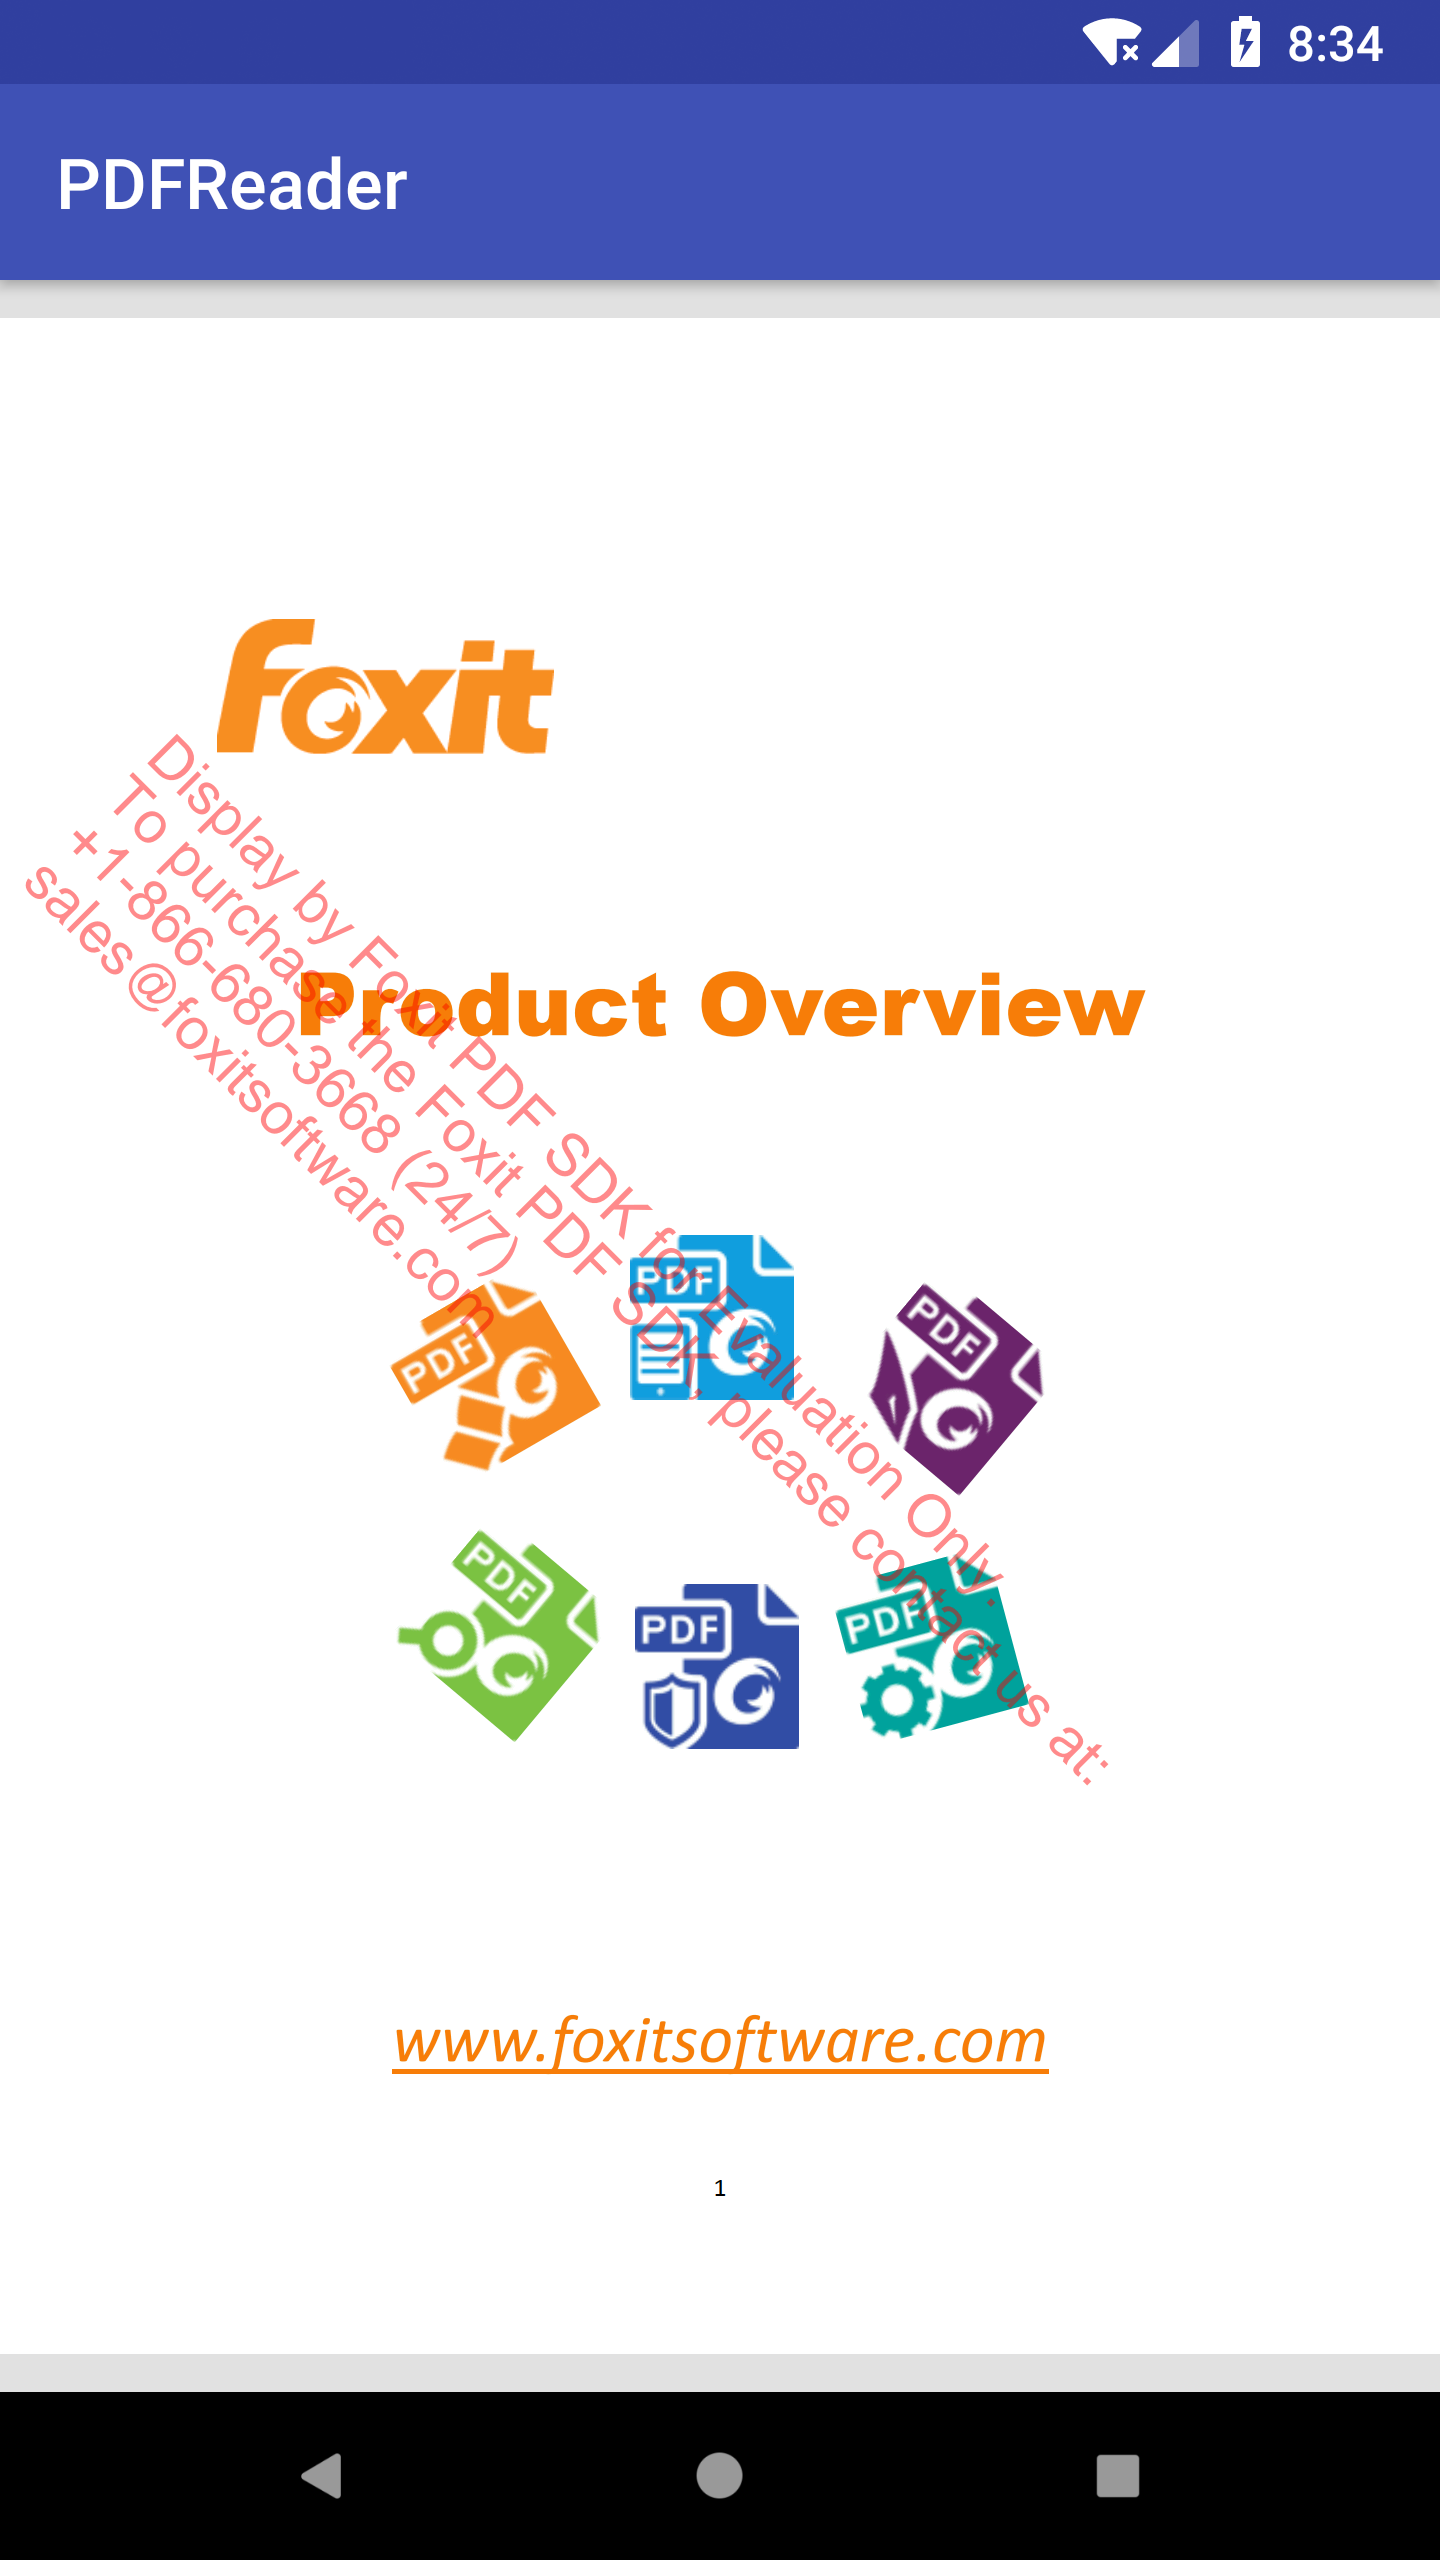 Developer Guide For Foxit Pdf Sdk Android How To Make A Kite Diagram Pictures 1 Apps Directories Now This Sample App Has Some Basic Features Such As Zooming In Out And Page Turning Just Have Try